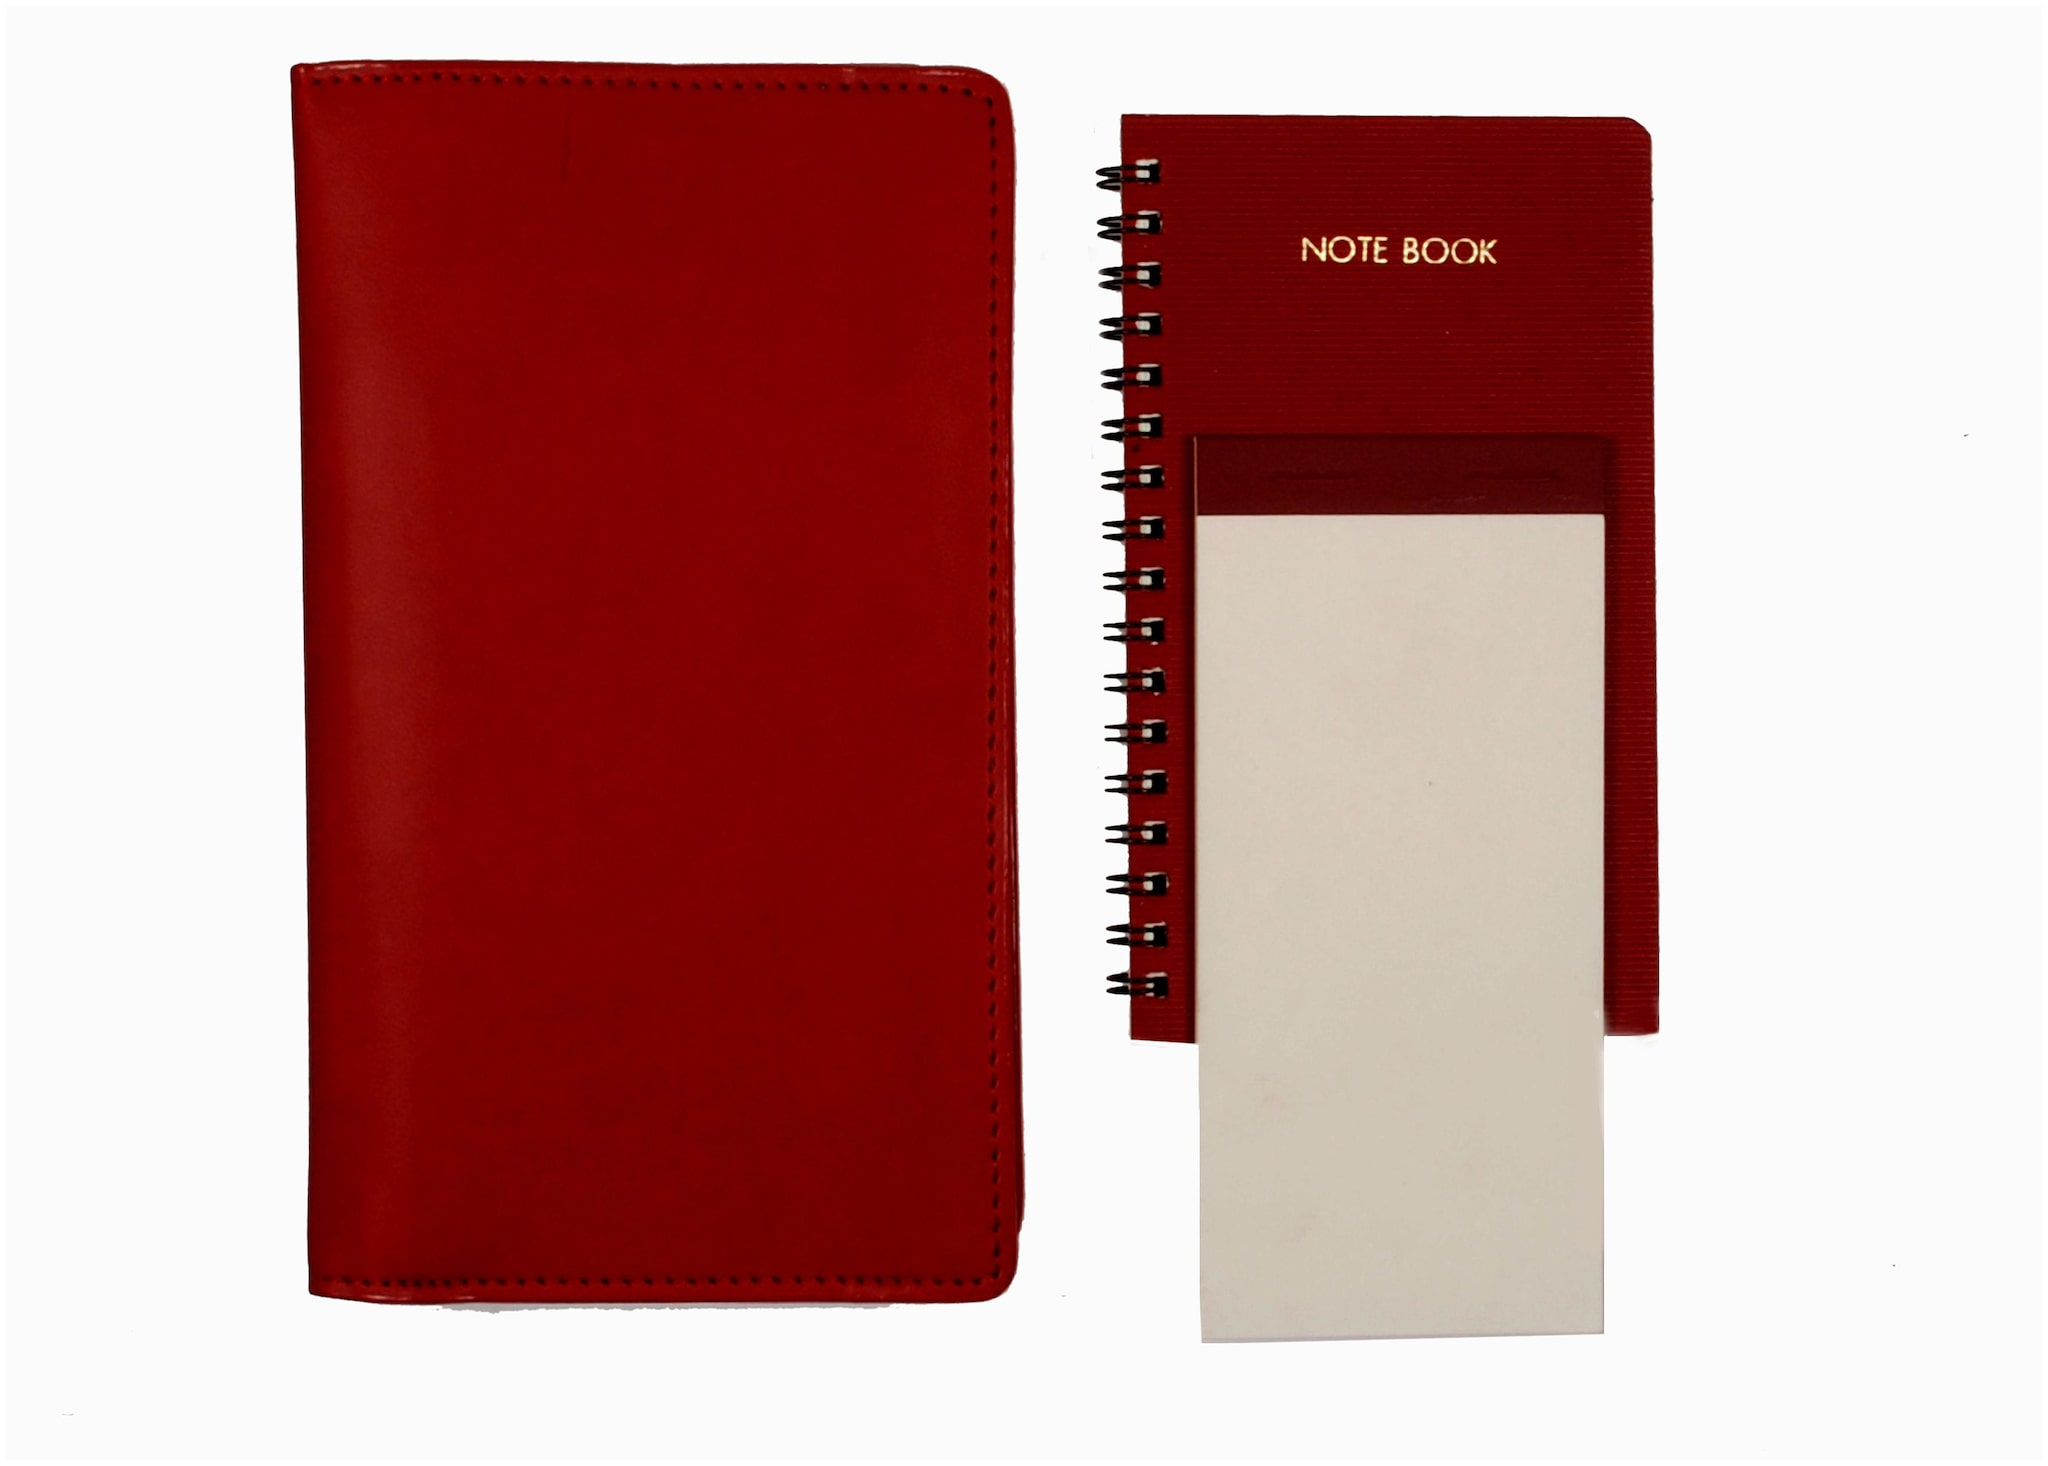 Sukeshcraft Mobile Note Pad with spare Notebook And Writing Pad Size 6.5X4.2 Inch.Mehroon